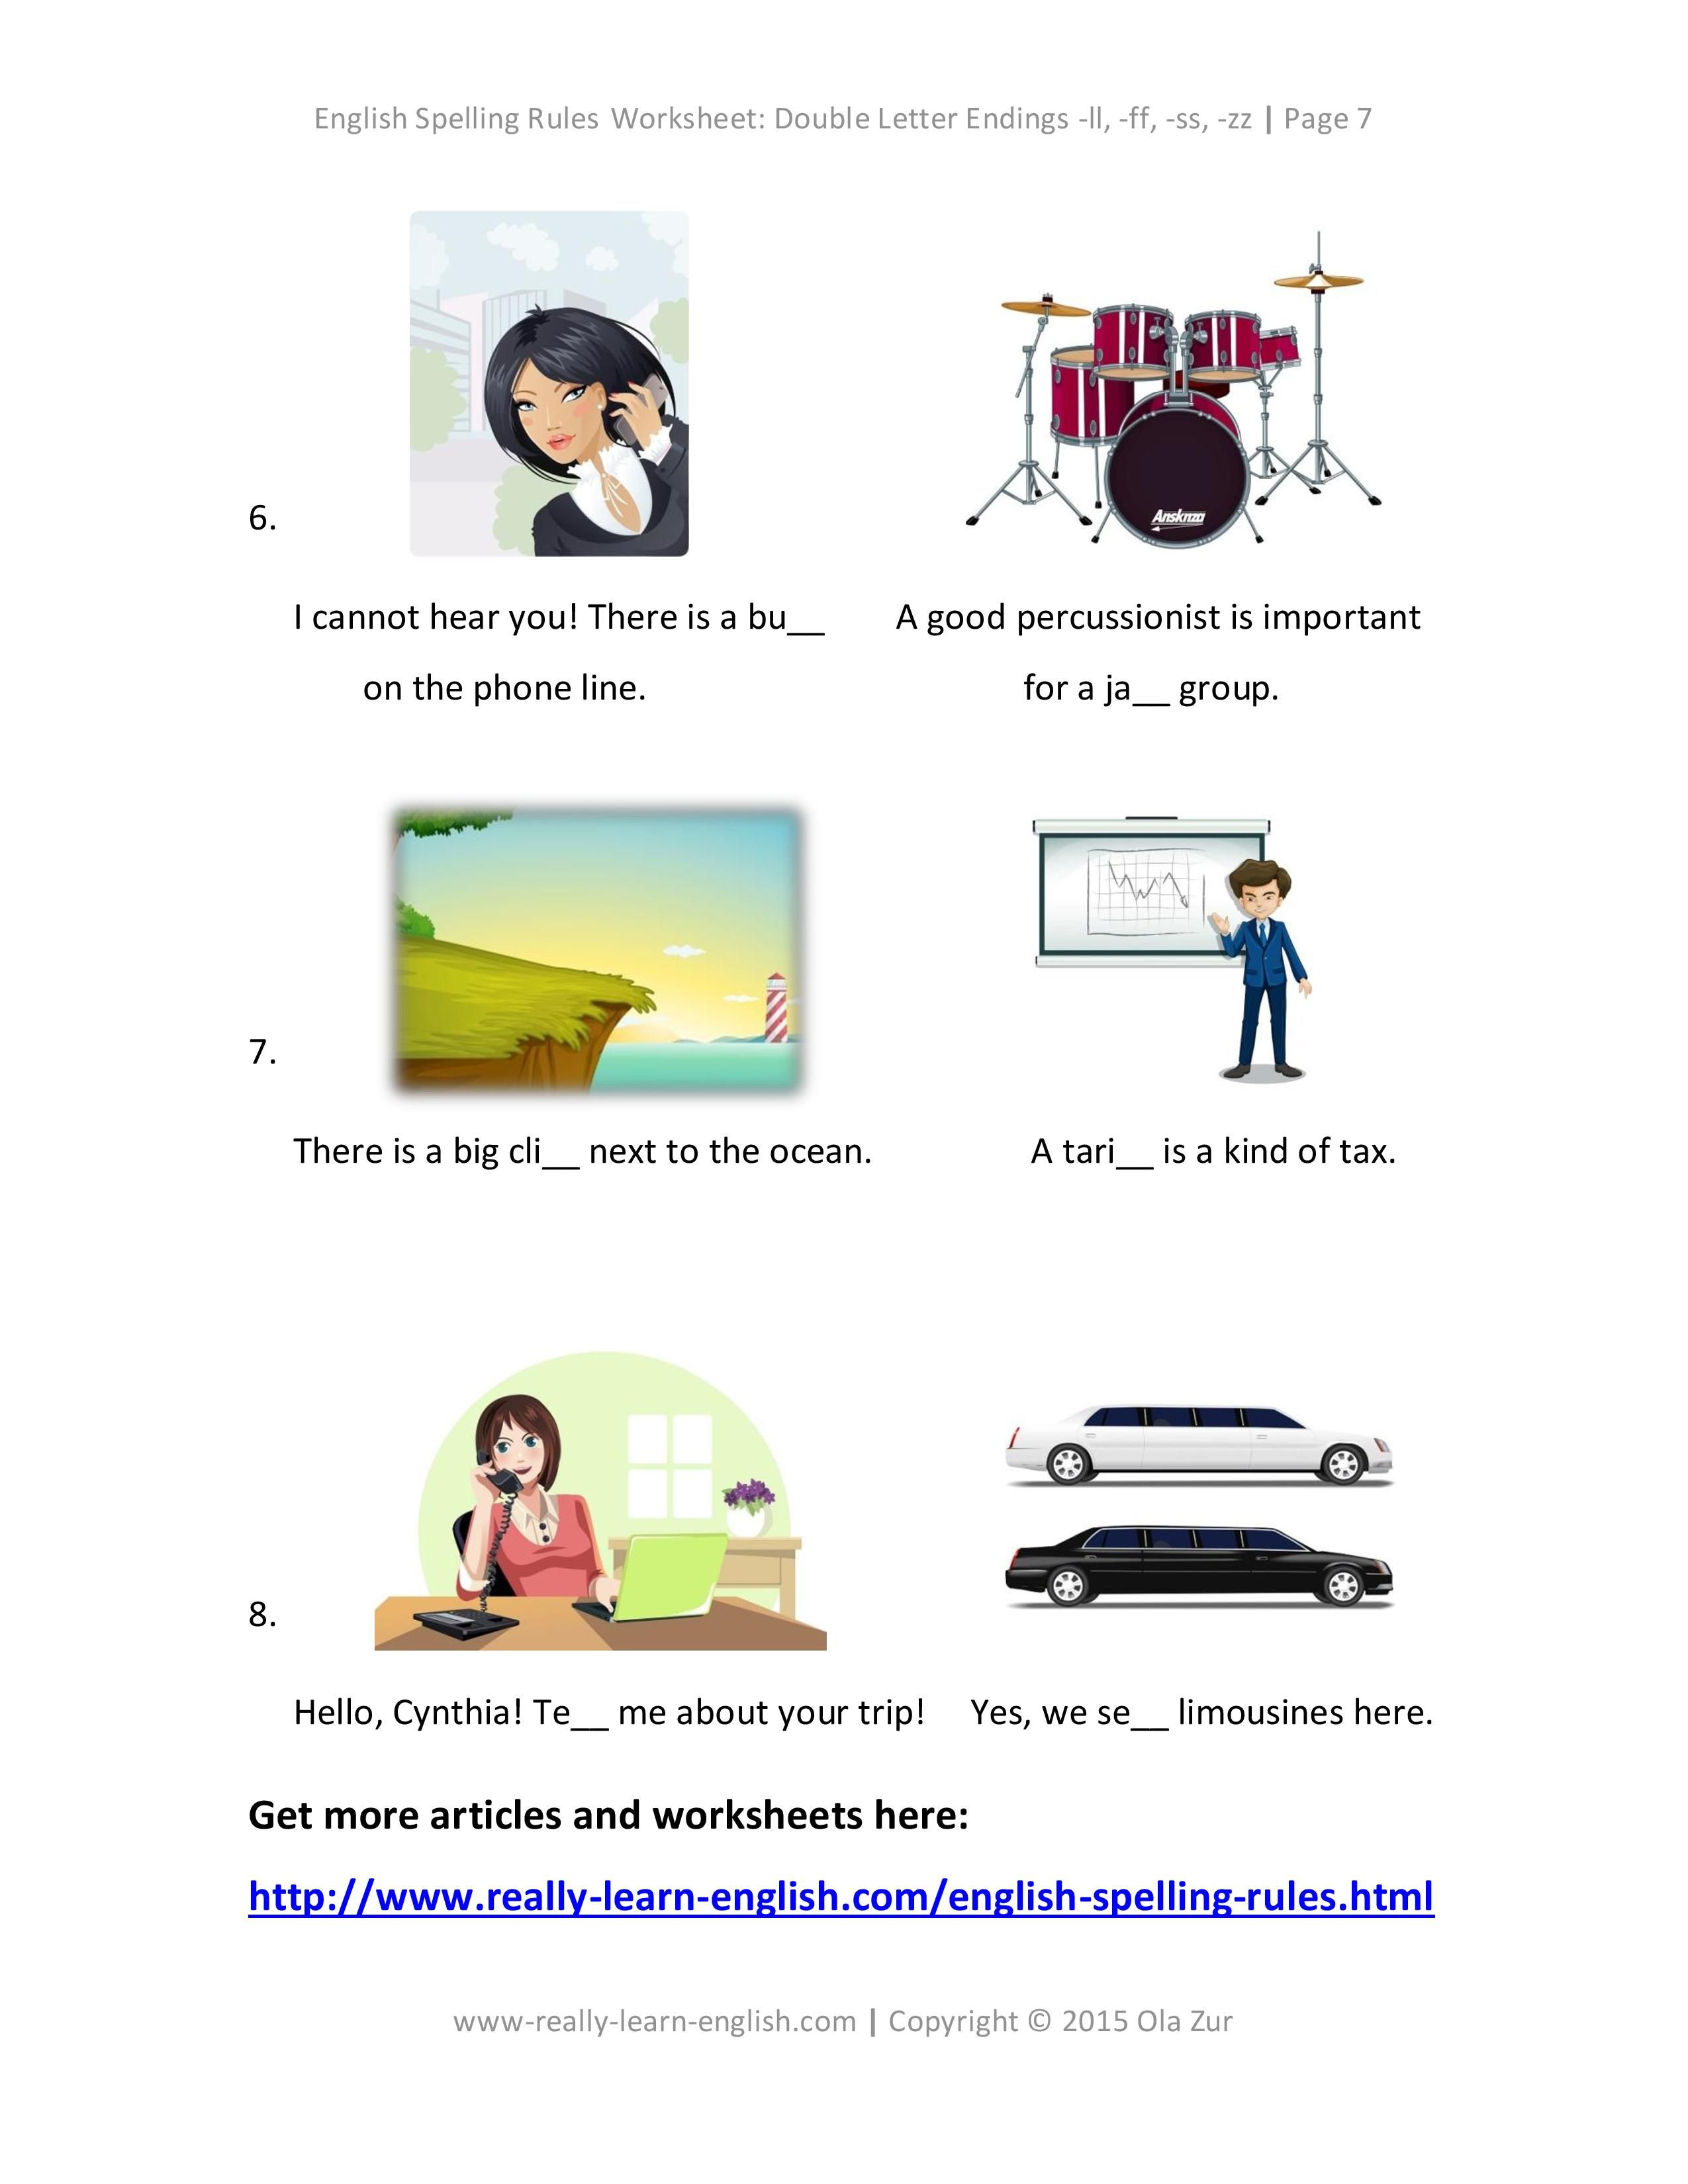 The Complete List Of English Spelling Rules Lesson 12 Double Letter Endings Ll Ff Ss Zz